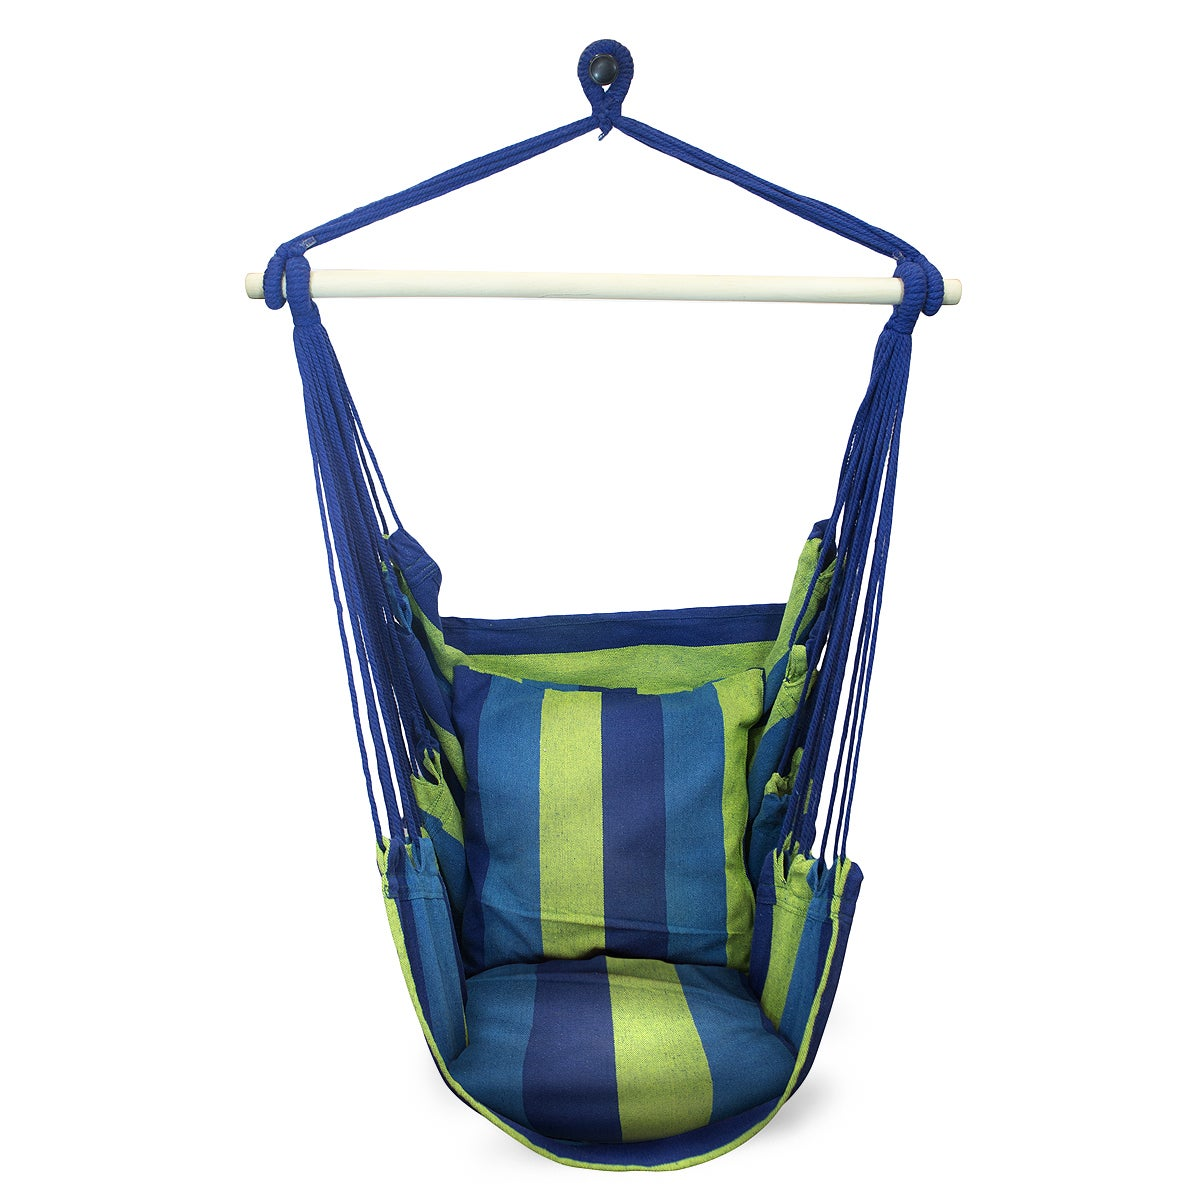 Sorbus Blue Hanging Rope Hammock Chair Swing Seat  sc 1 st  Overstock.com & Buy Hanging Chair Hammocks u0026 Porch Swings Online at Overstock | Our ...